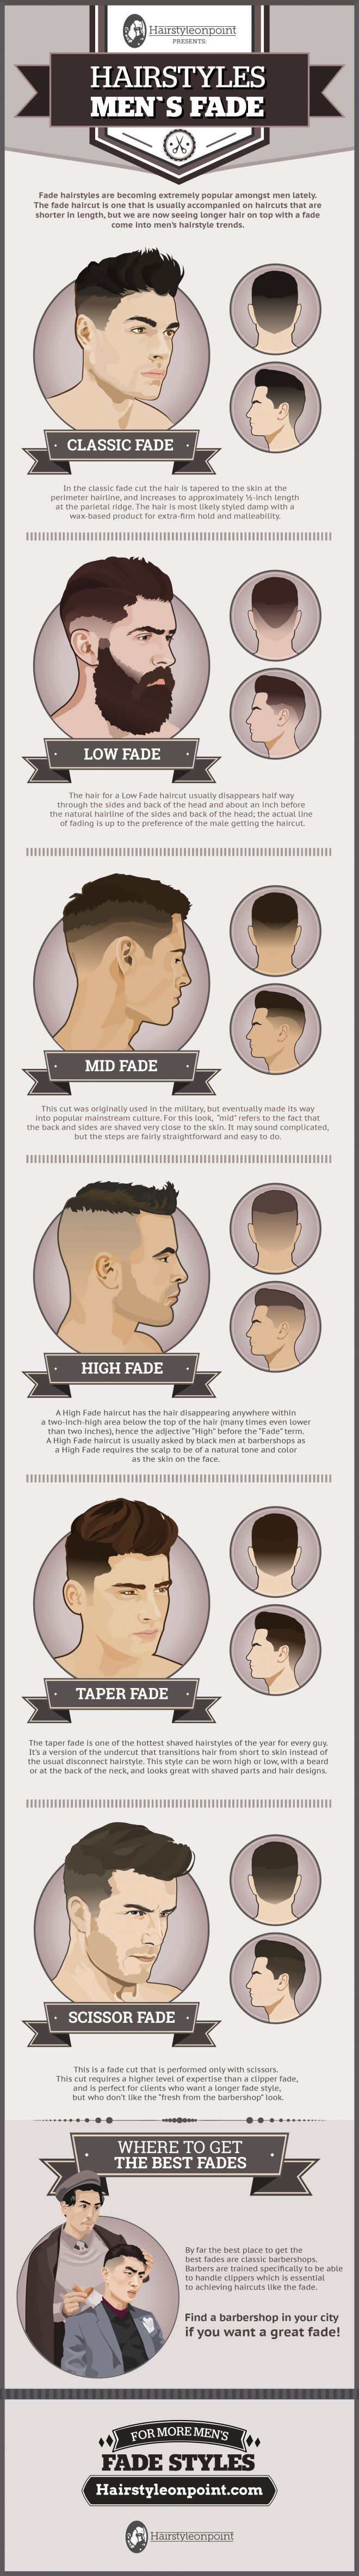 43 medium length hairstyles for men men s hairstyles and - Men S Hairstyles A Simple Guide To Popular And Modern Fades Scissor Fade